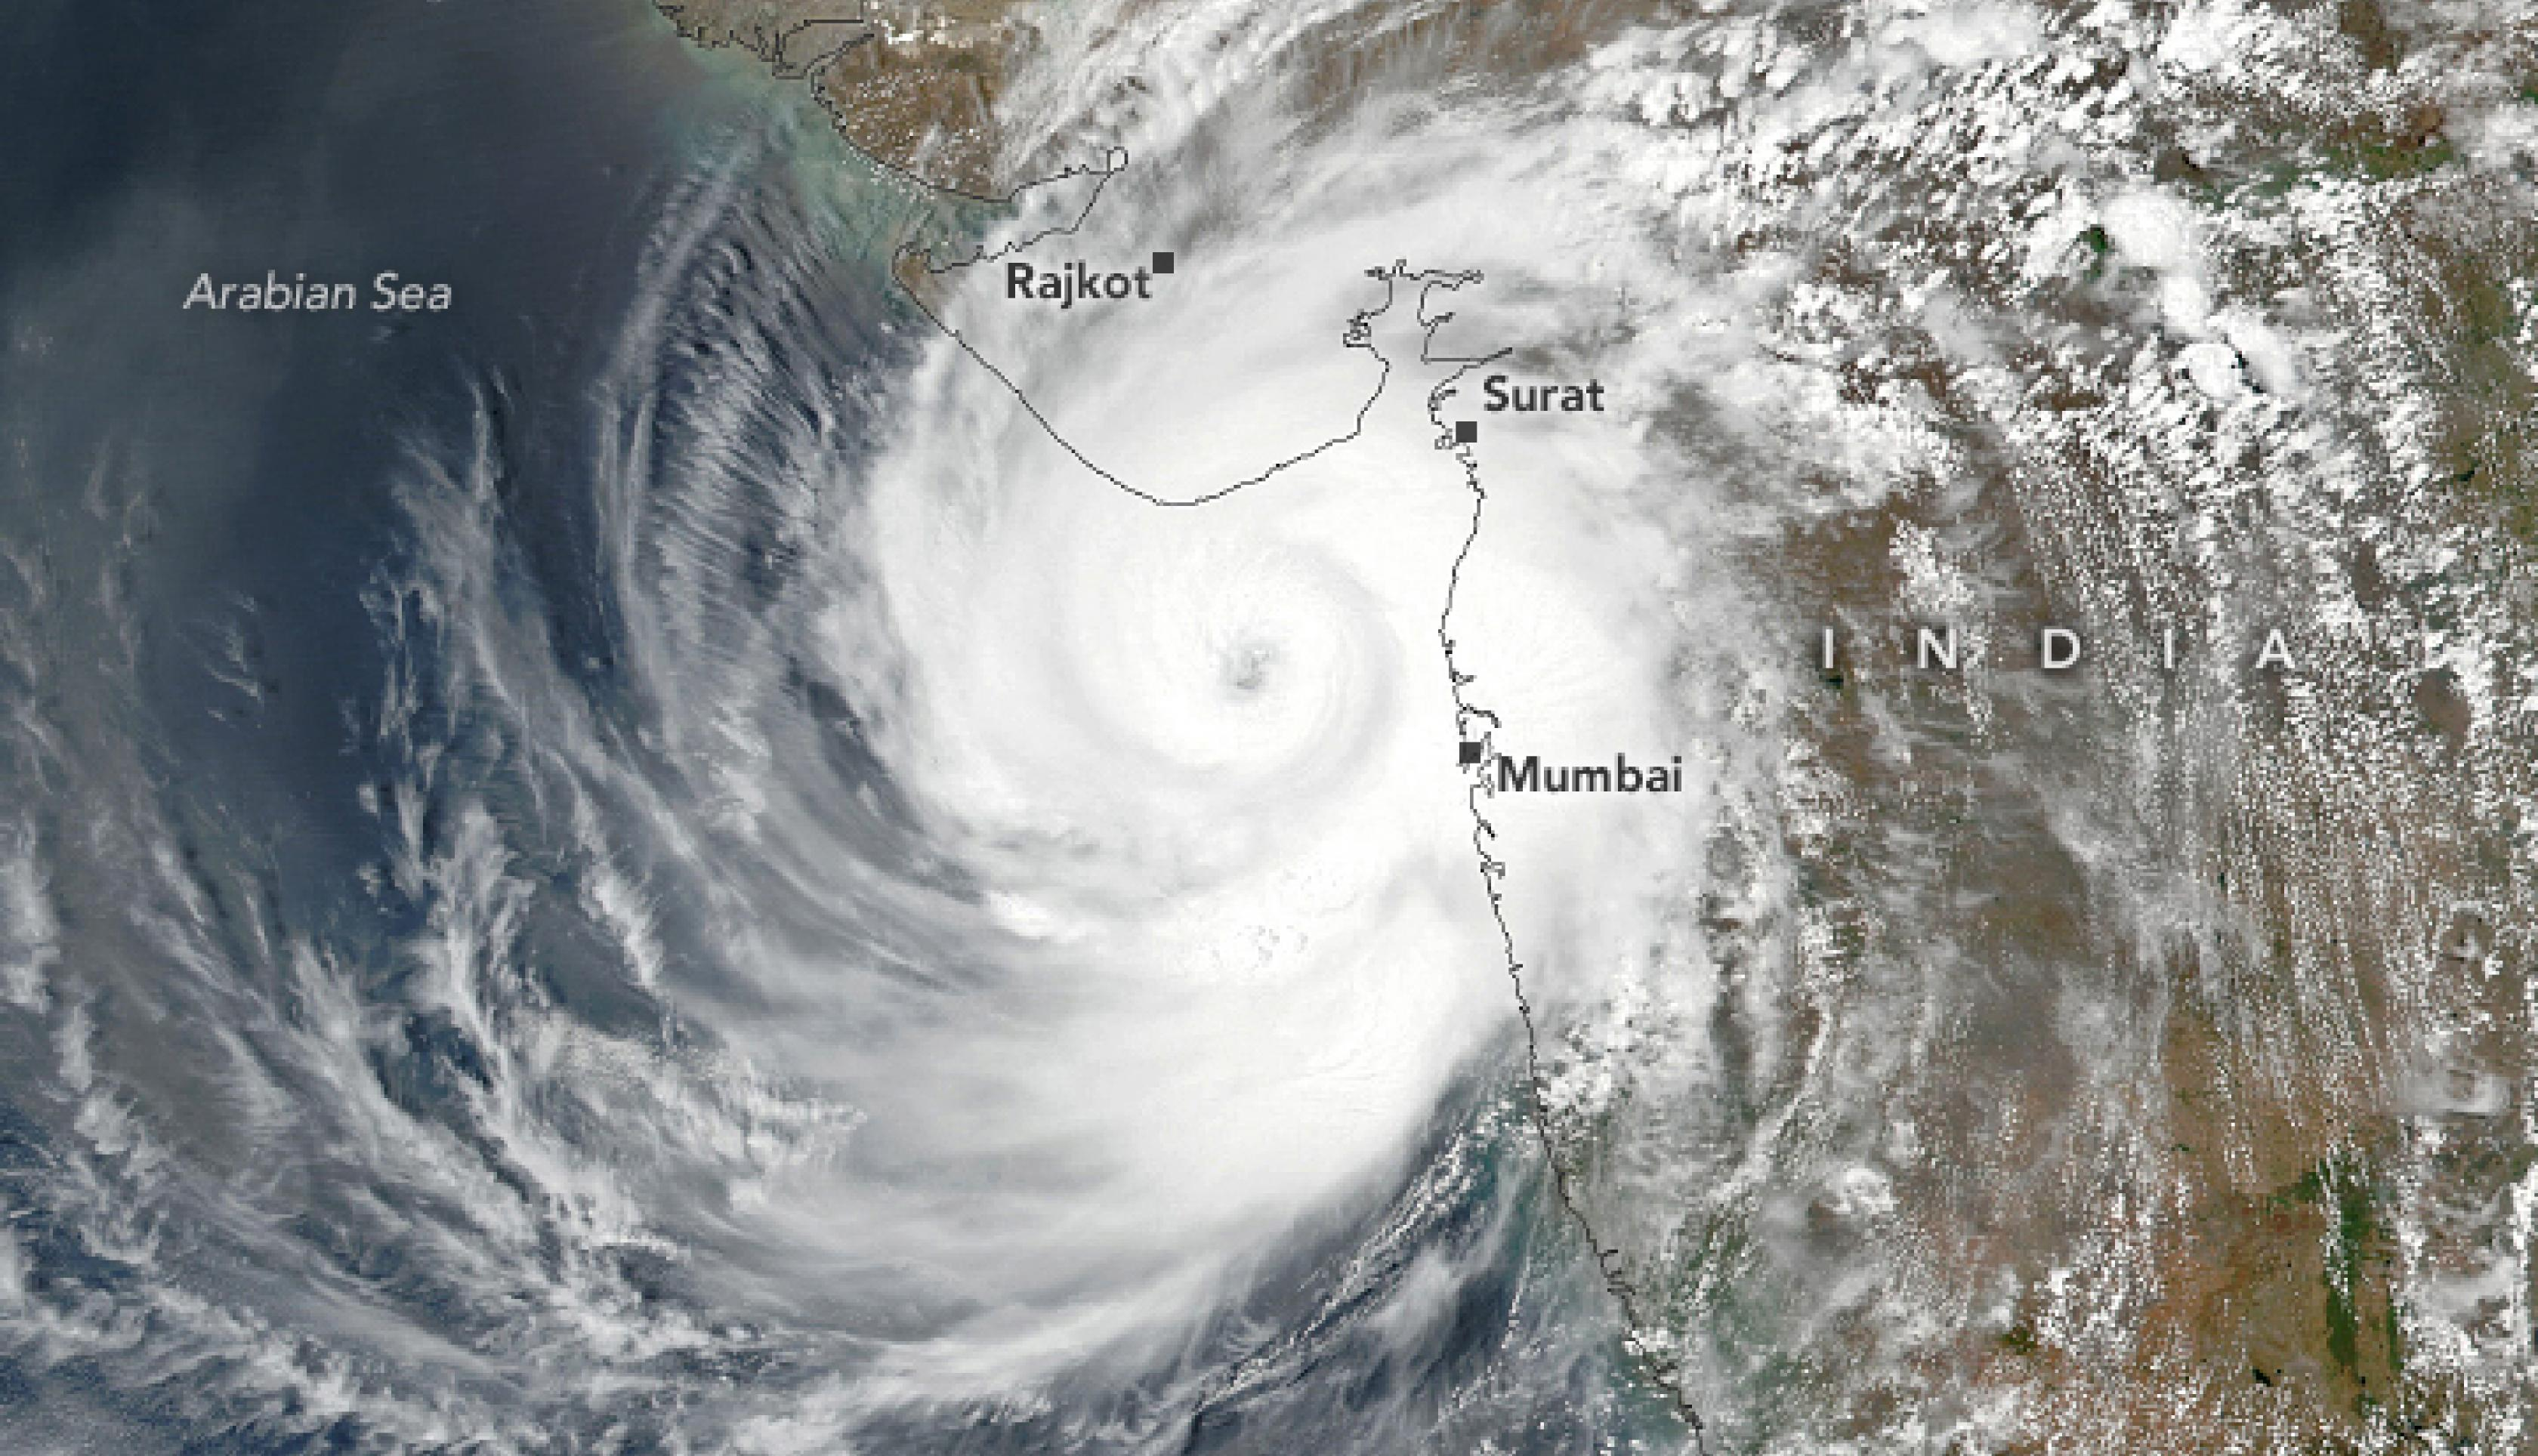 The Visible Infrared Imaging Radiometer Suite (VIIRS) on the NASA-NOAA Suomi NPP satellite acquired this natural-color image of the storm a few hours before it made landfall between Porbandar and Mahuva. The image uses VIIRS data from NASA EOSDIS LANCE, GIBS/Worldview, and the Suomi National Polar-orbiting Partnership Credits: NASA/Lauren Dauphin